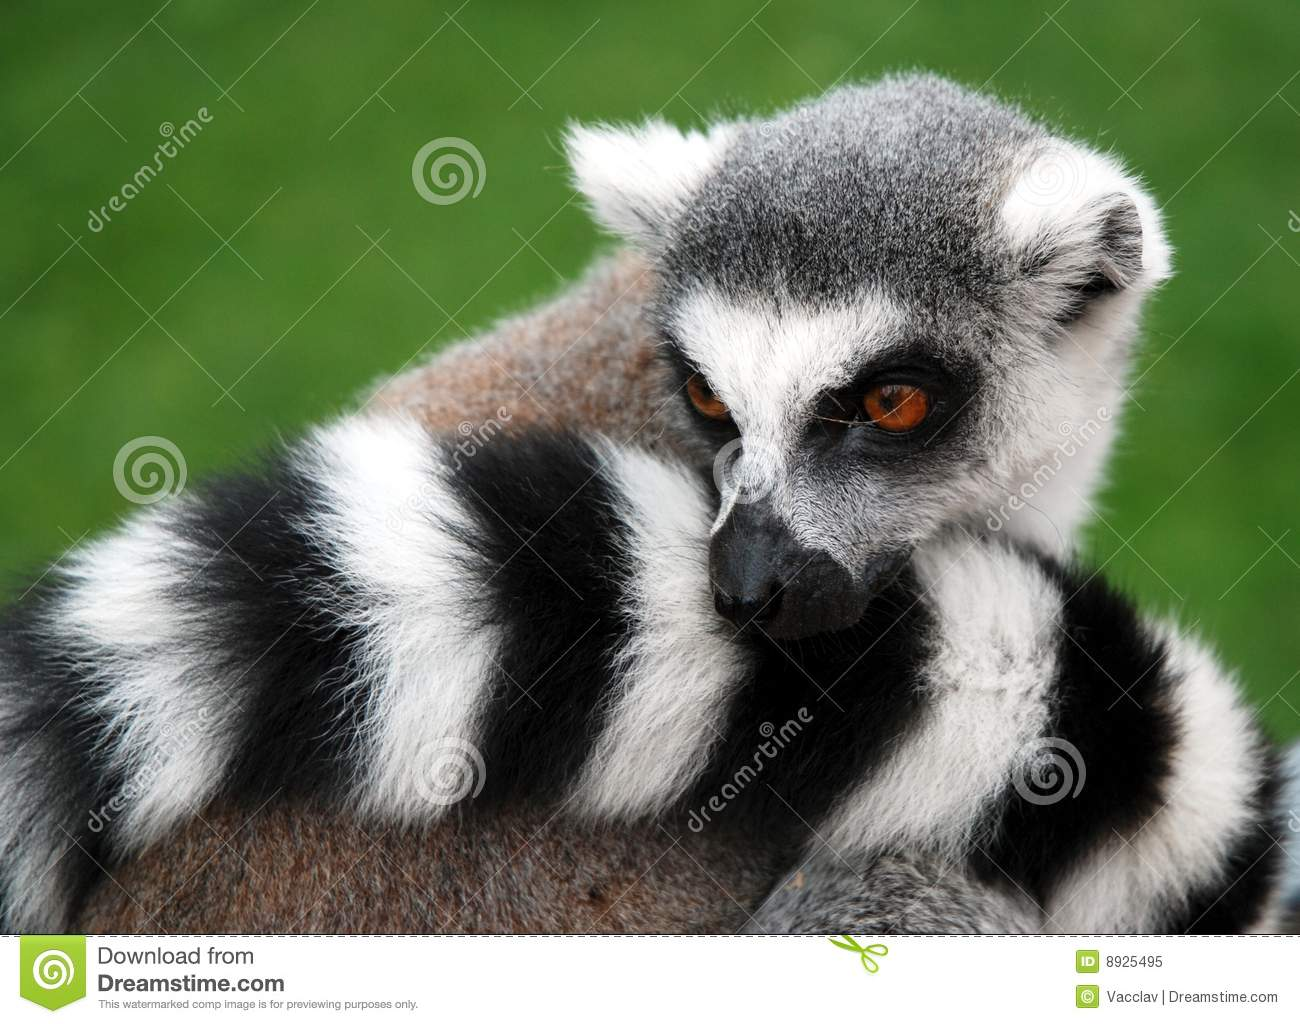 Maki Animale Lemur Animal Royalty Free Stock Photo Image 8925495